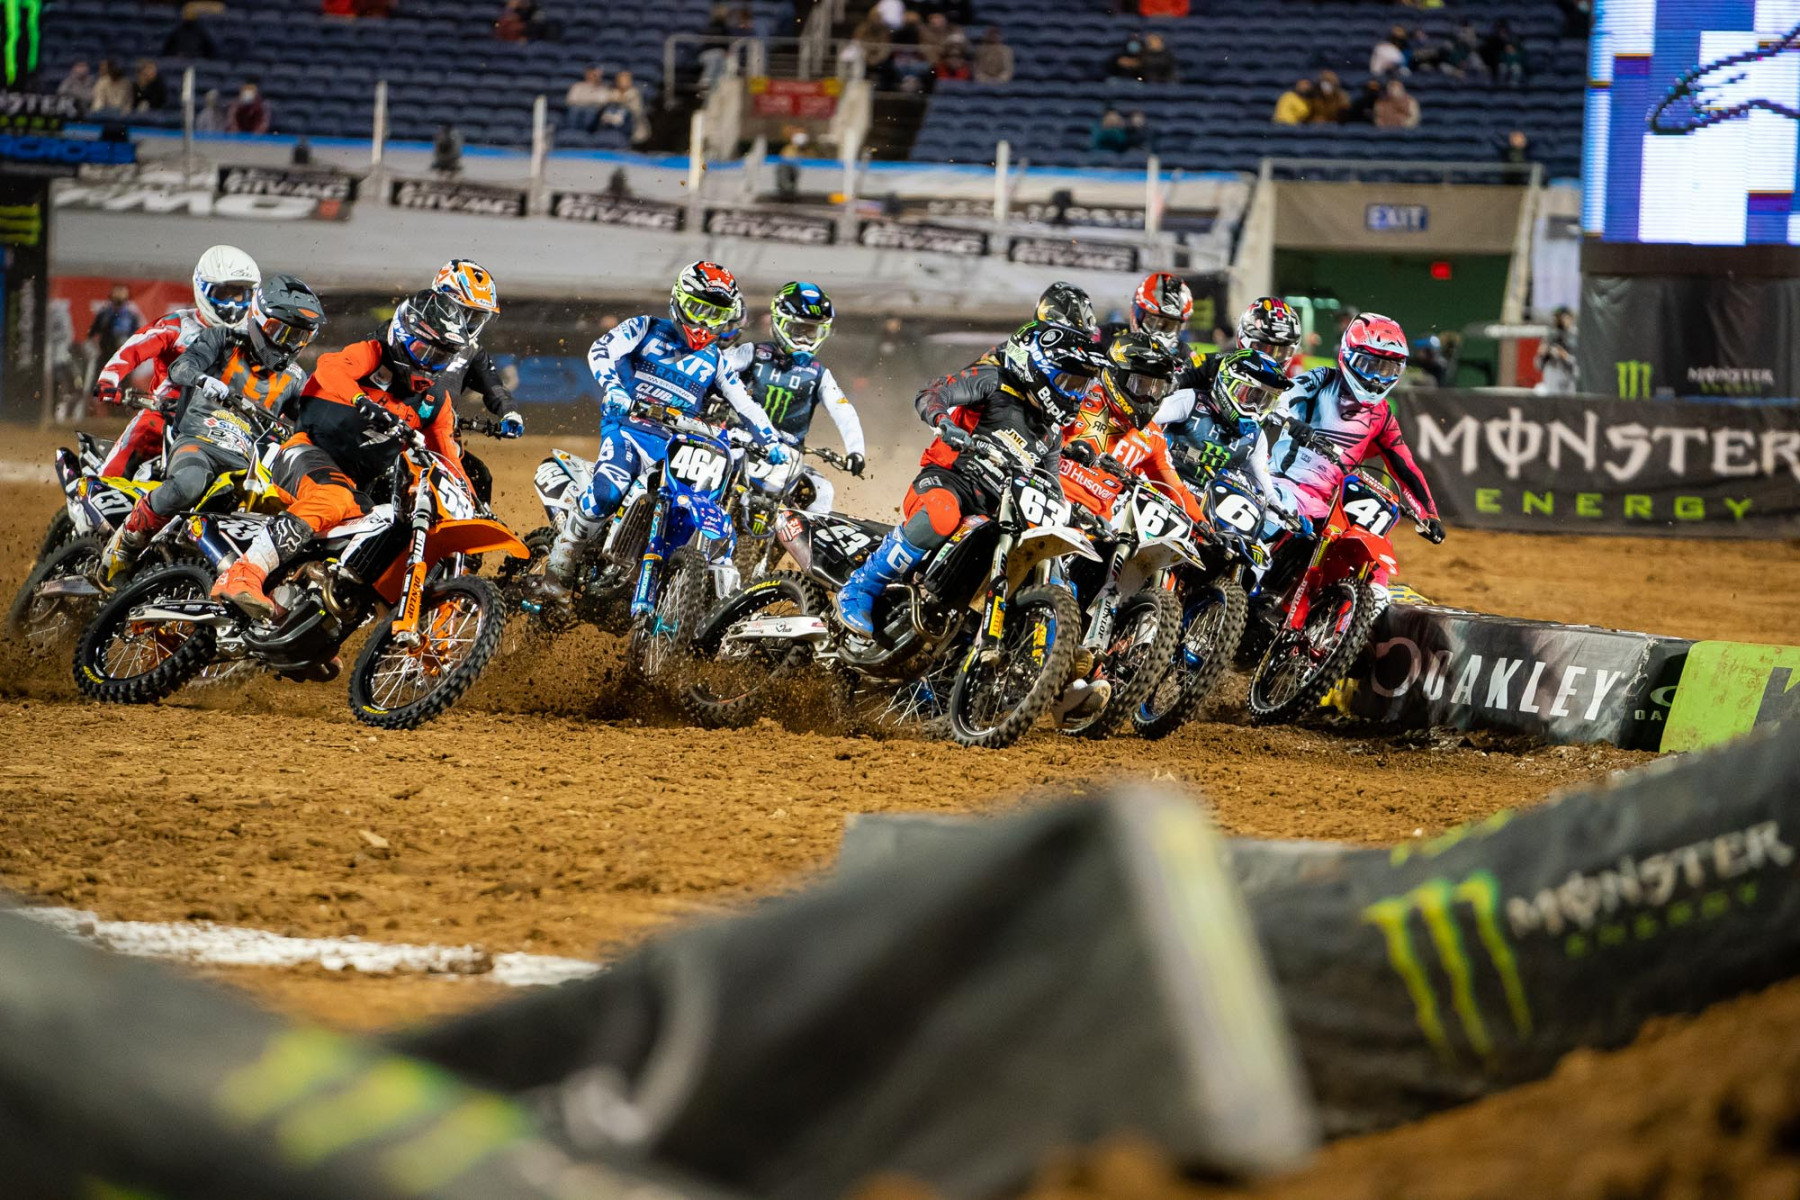 2021-ORLANDO-TWO-SUPERCROSS_KICKSTART_1527